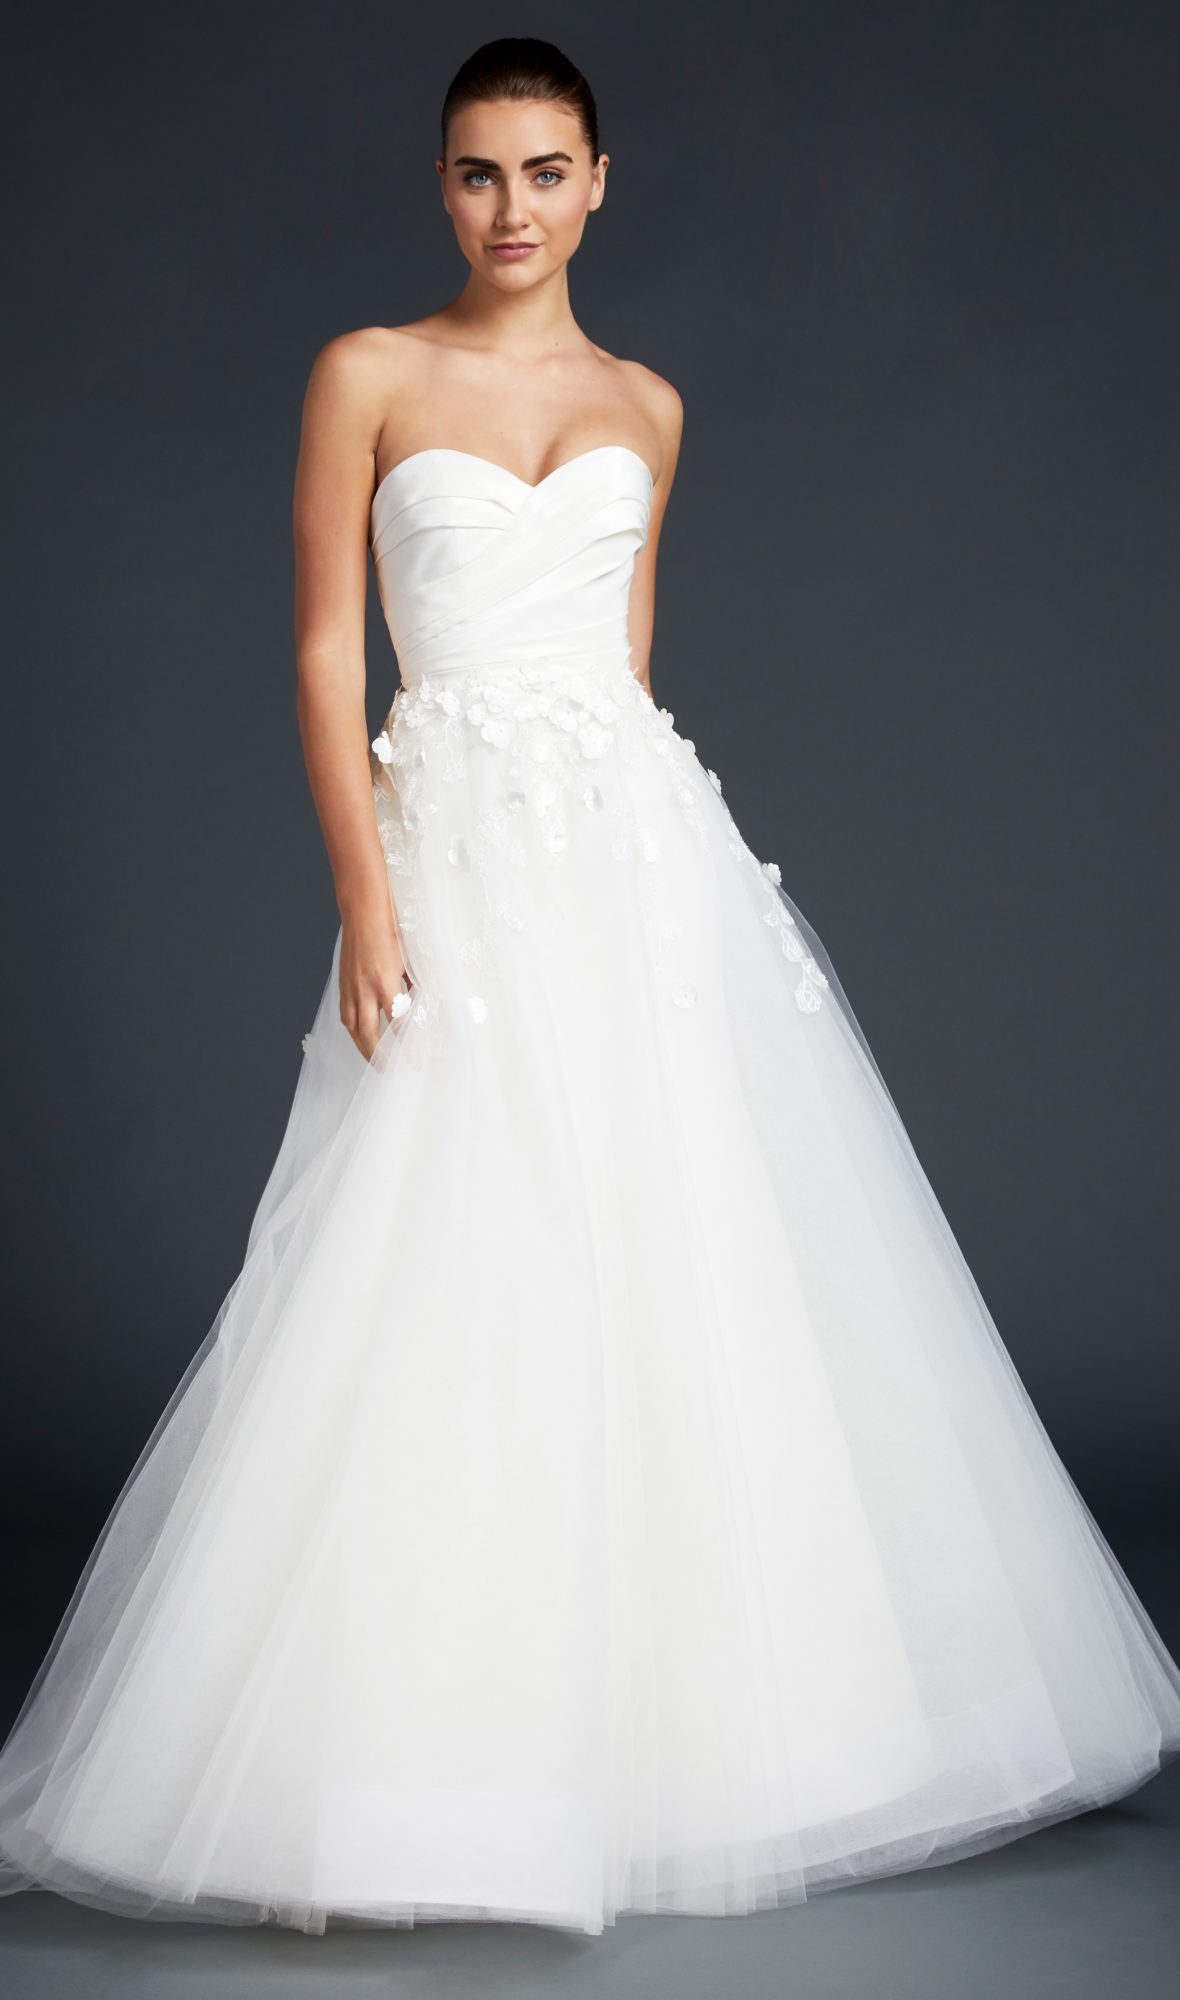 blue willow wedding dress strapless sweetheart tulle ball gown